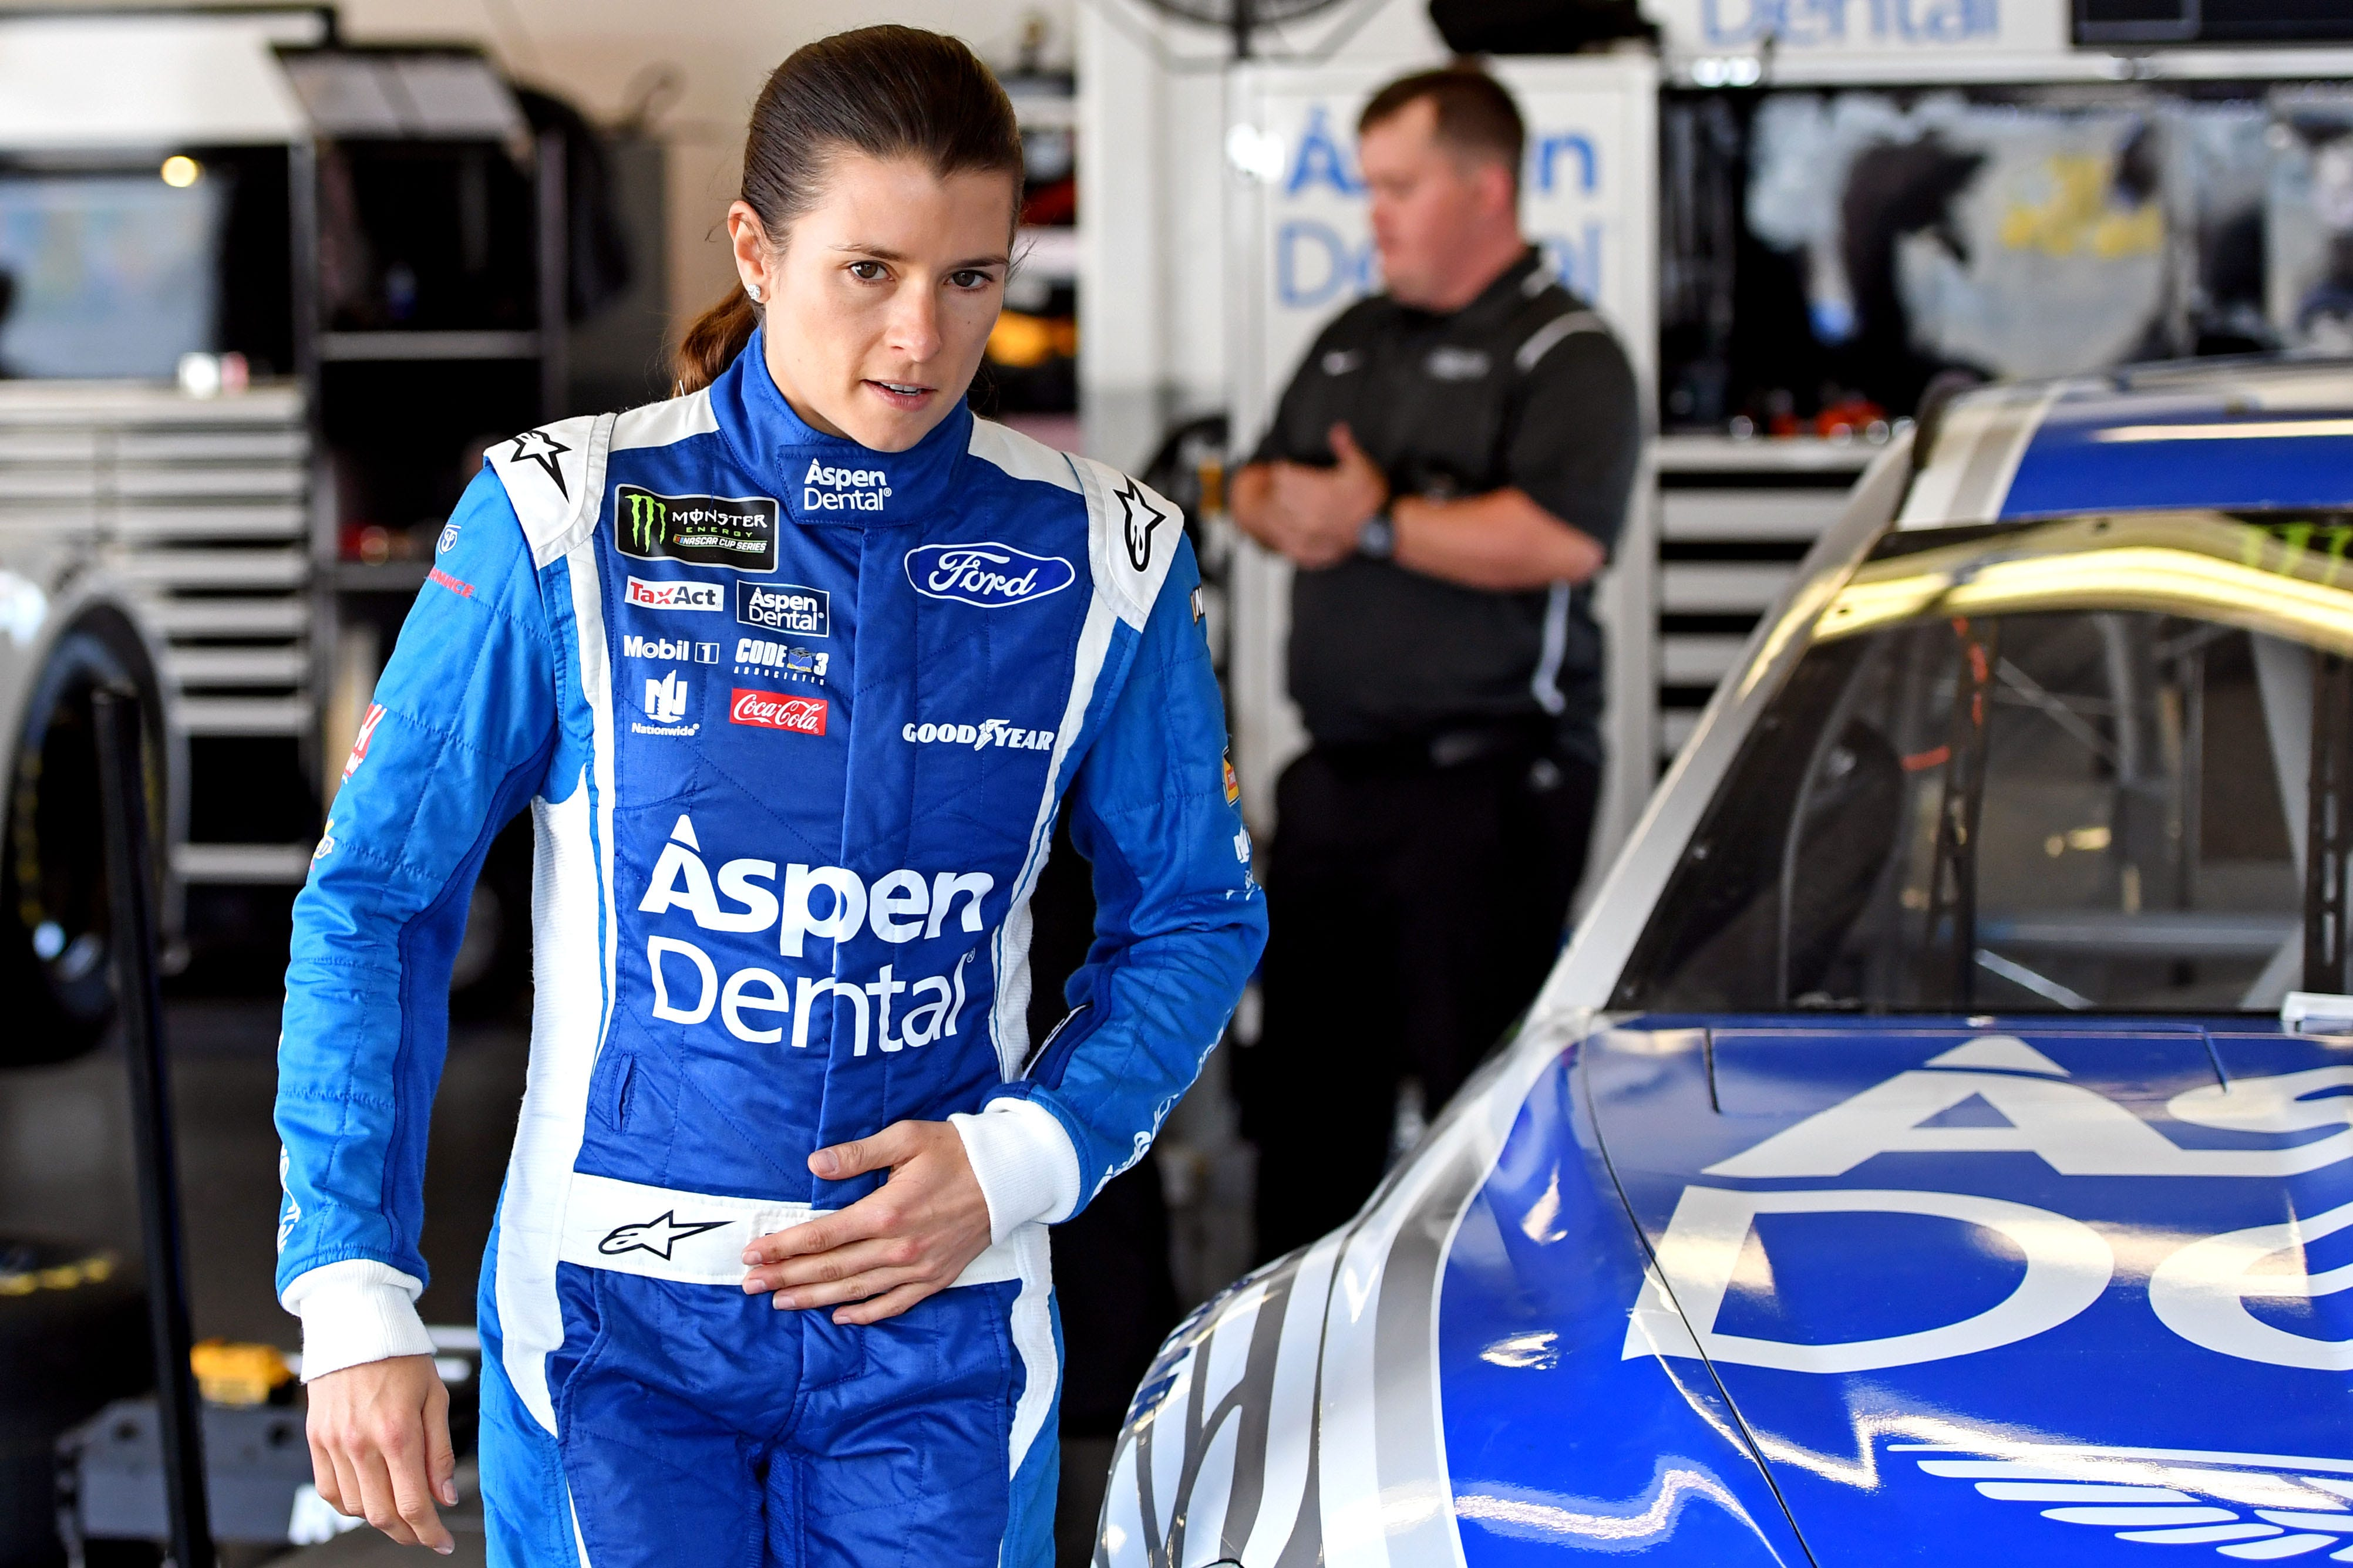 Danica Patrick on Twitter trolls: 'They're very unhappy people'